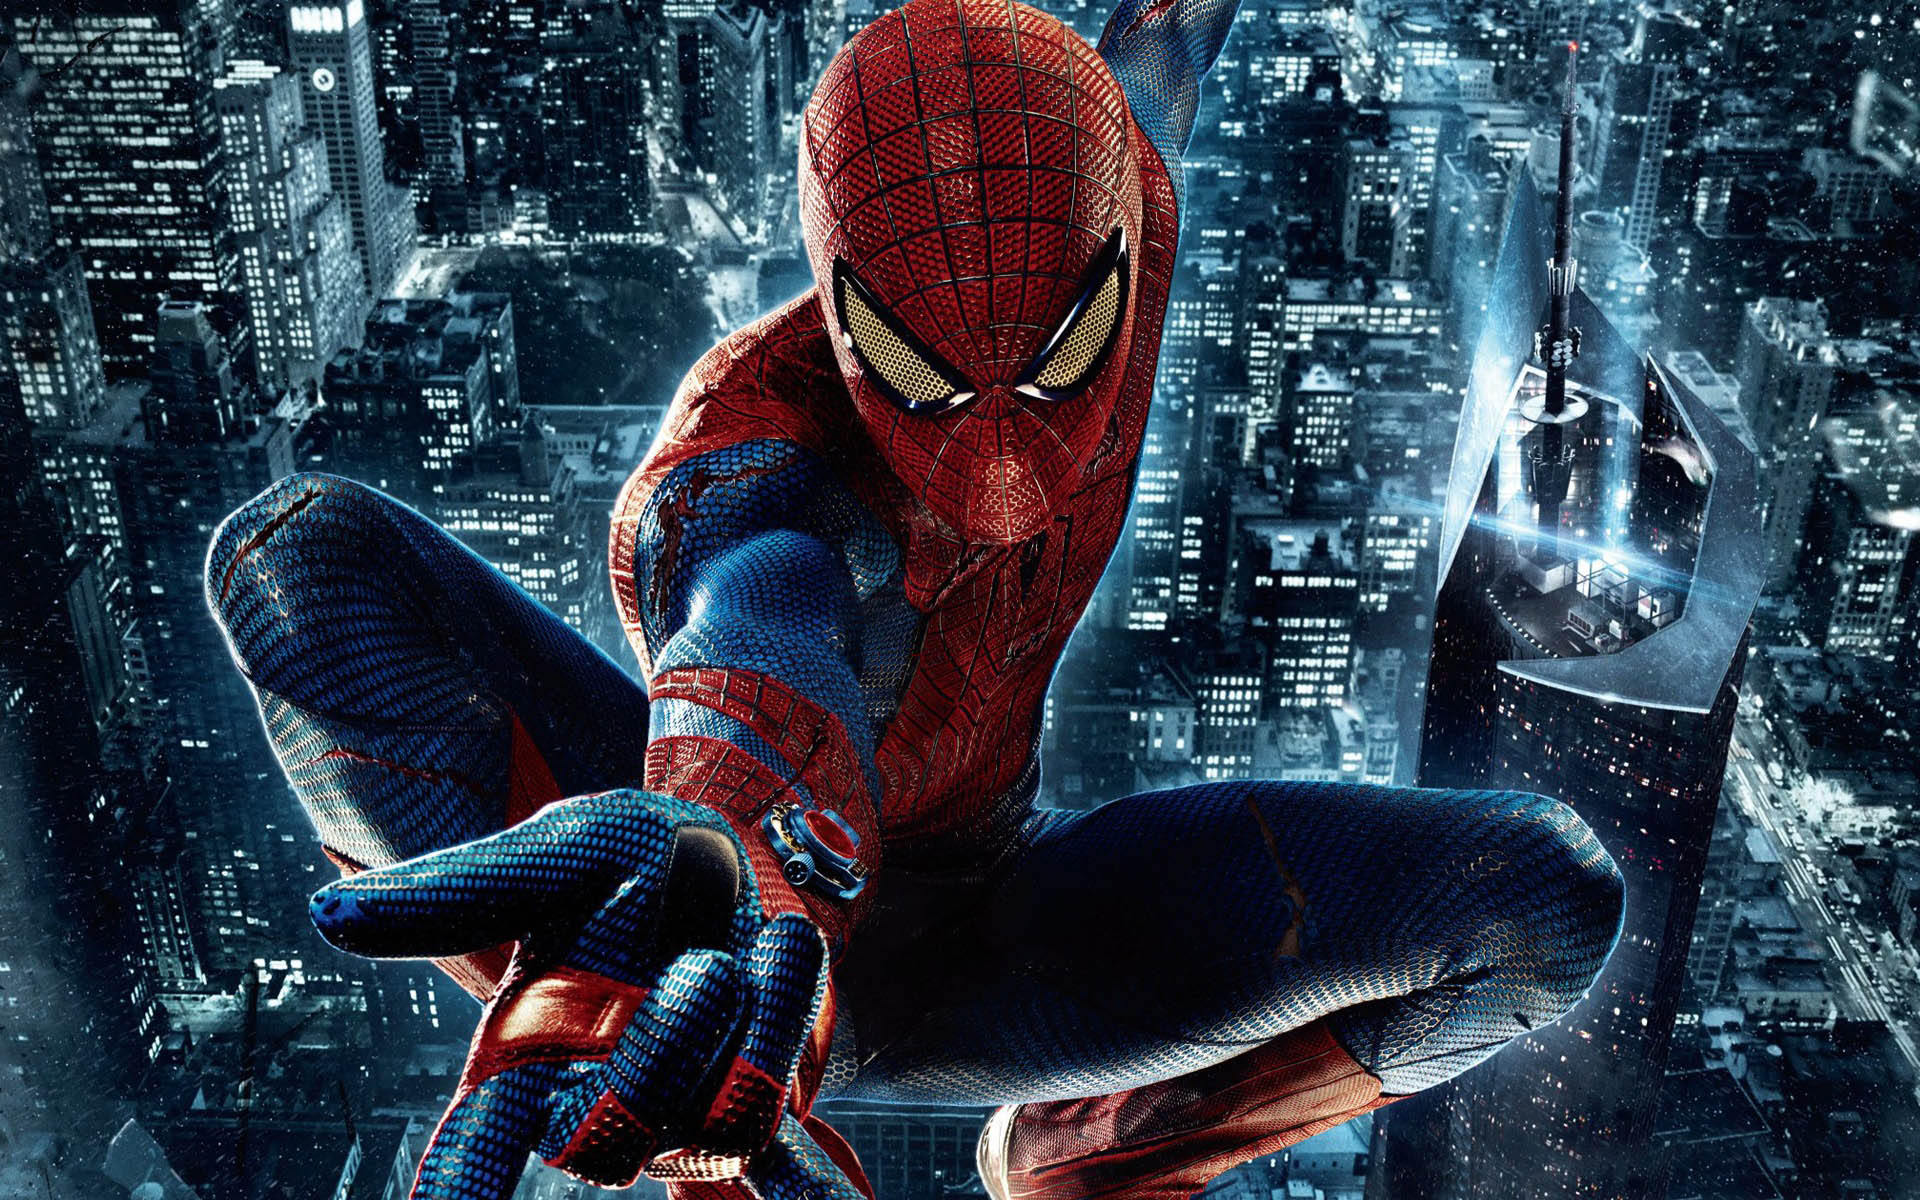 Marvel 39 s kevin feige confirms mcu 39 s spider man the mary sue - Image spiderman ...